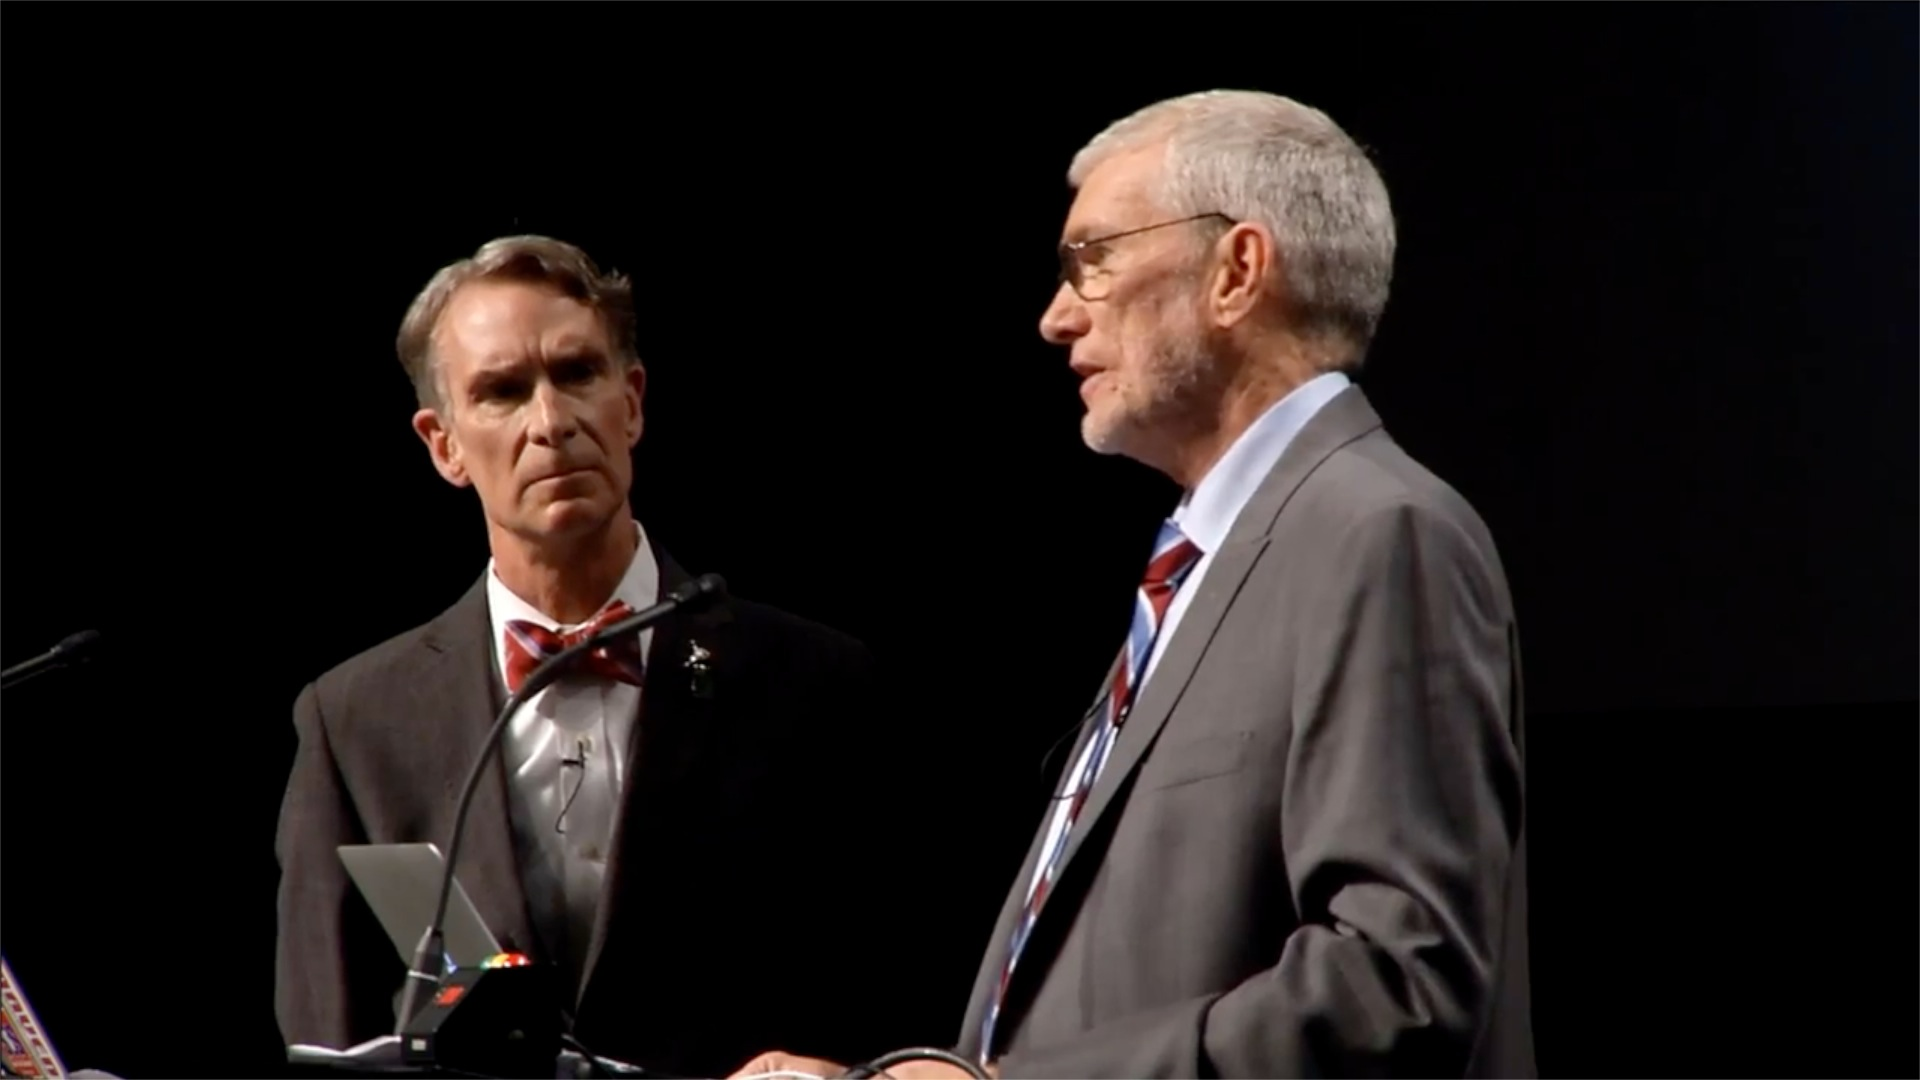 Bill Nye (left) and Ken Ham (right) debate